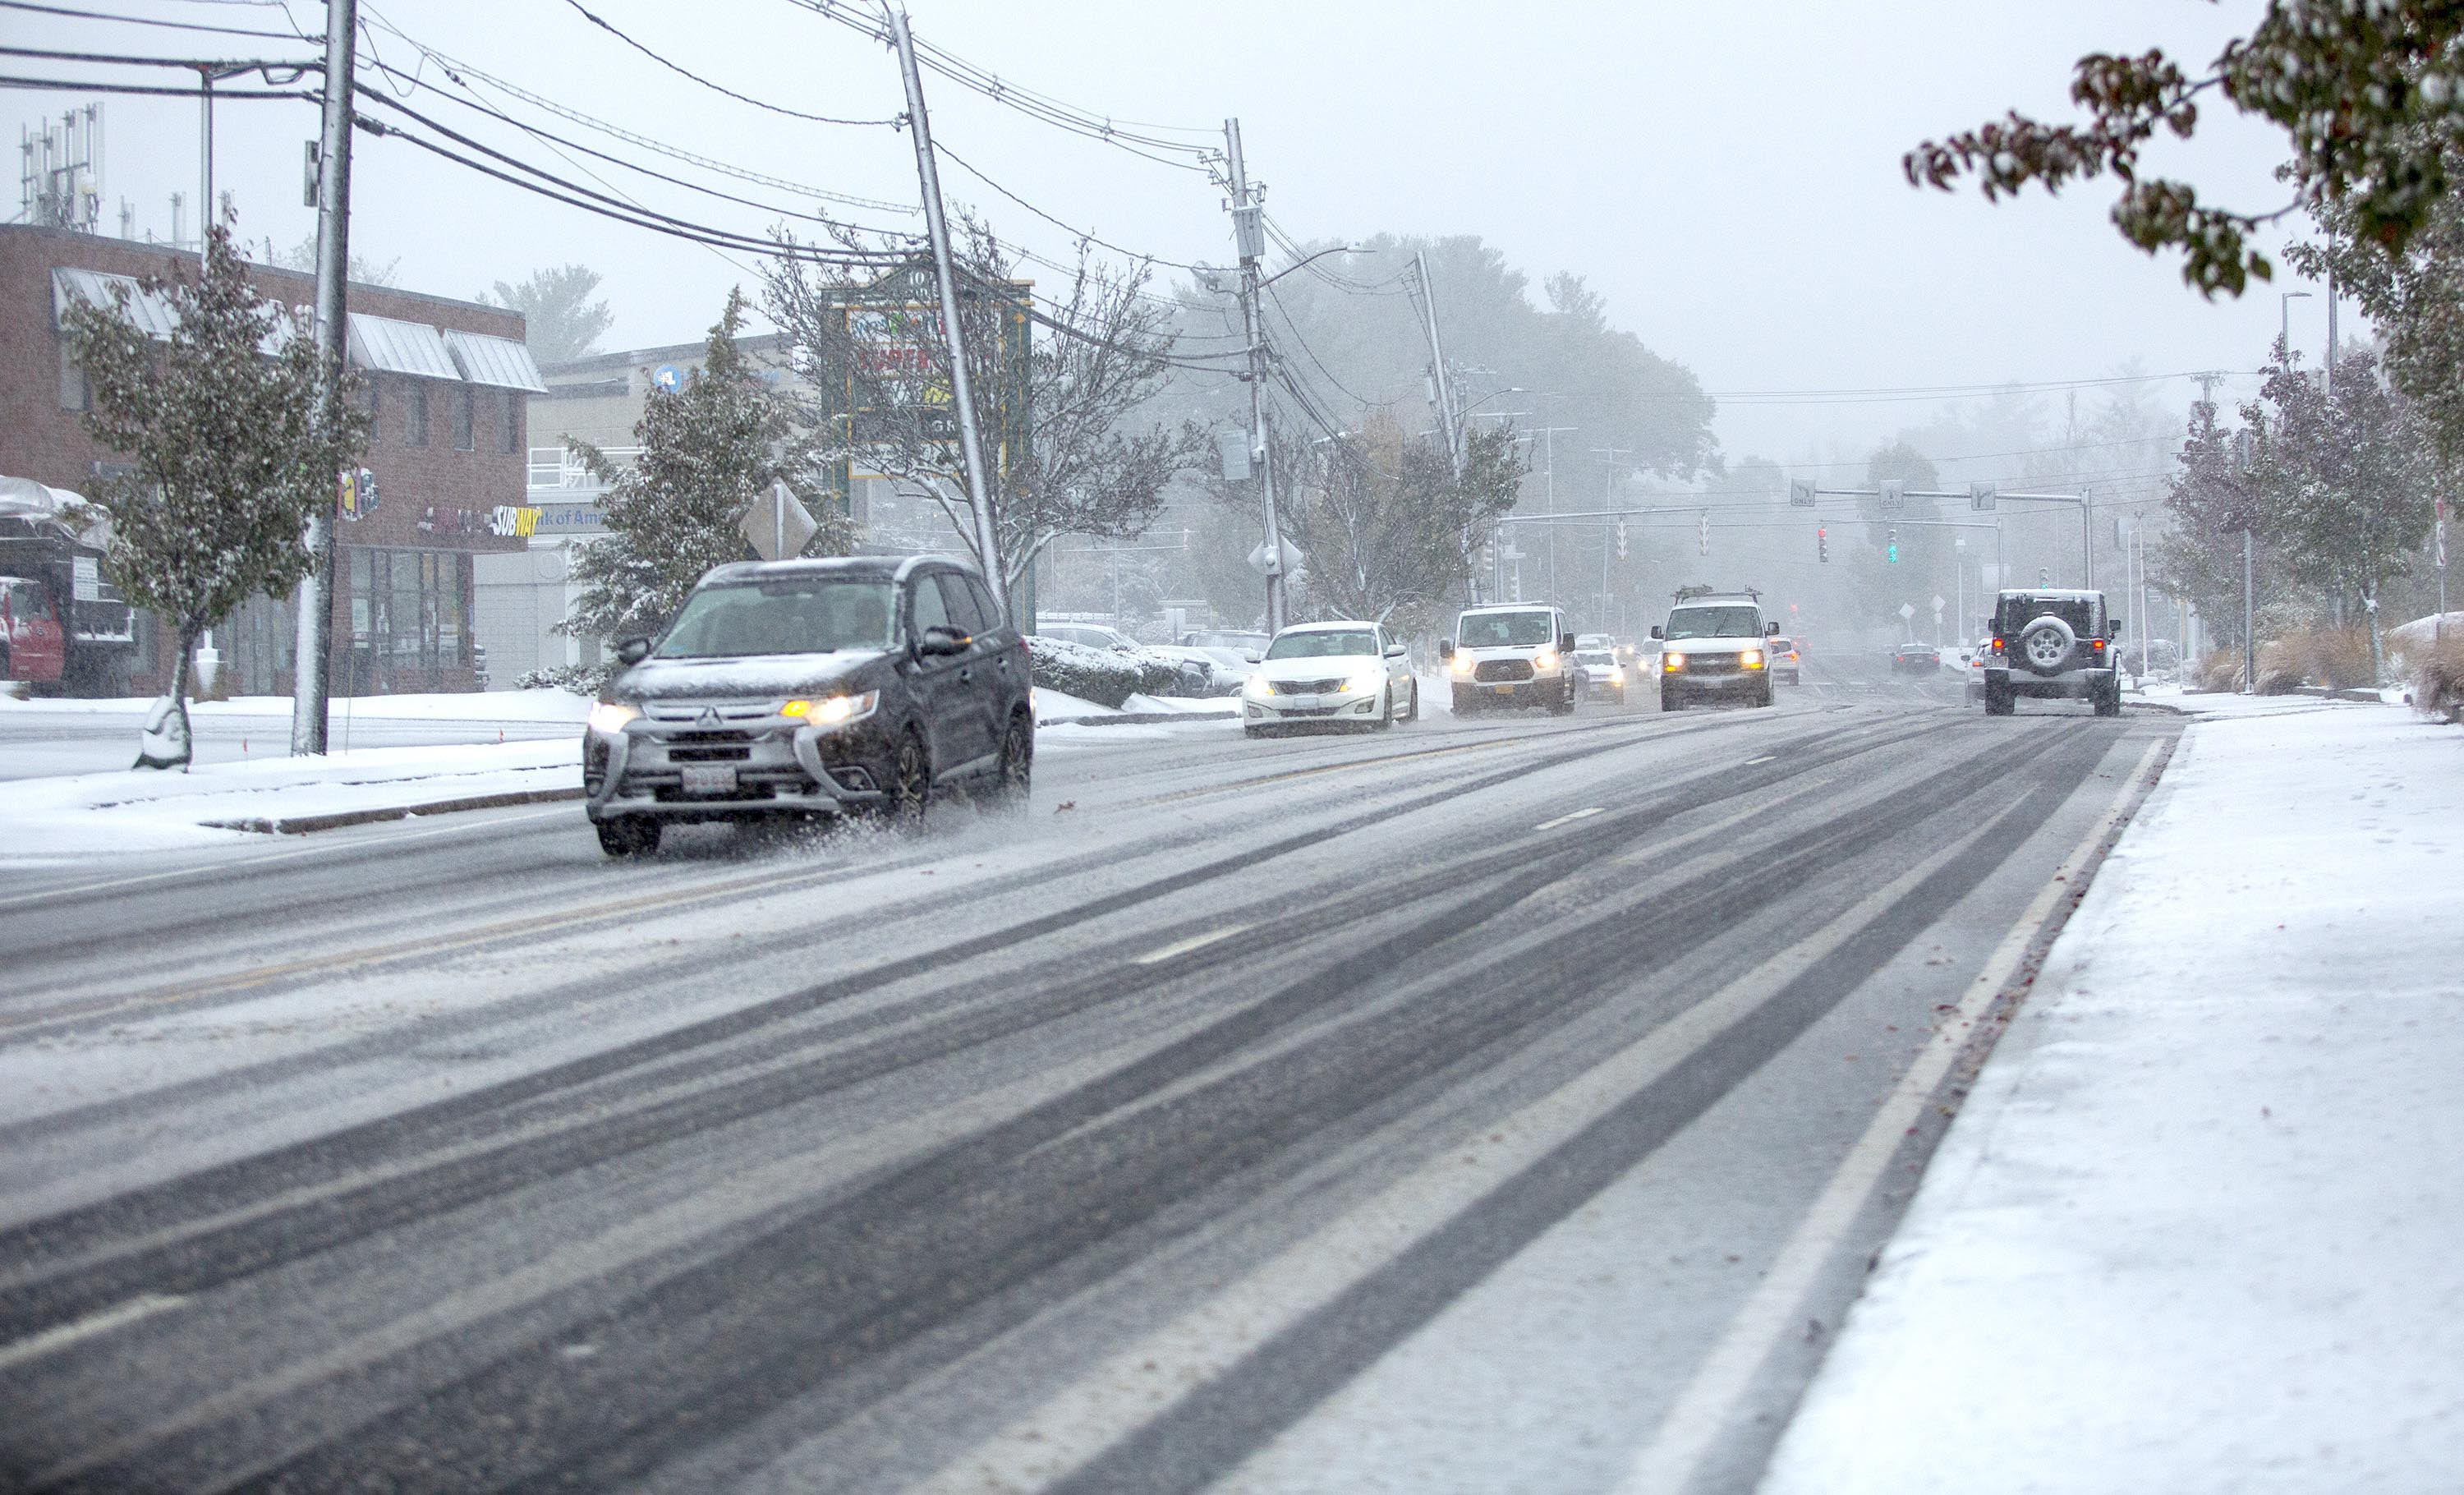 Cars cut tracks through the fresh snow on Waltham Street in Waltham on Friday morning. ( Robin Lubbock/WBUR)